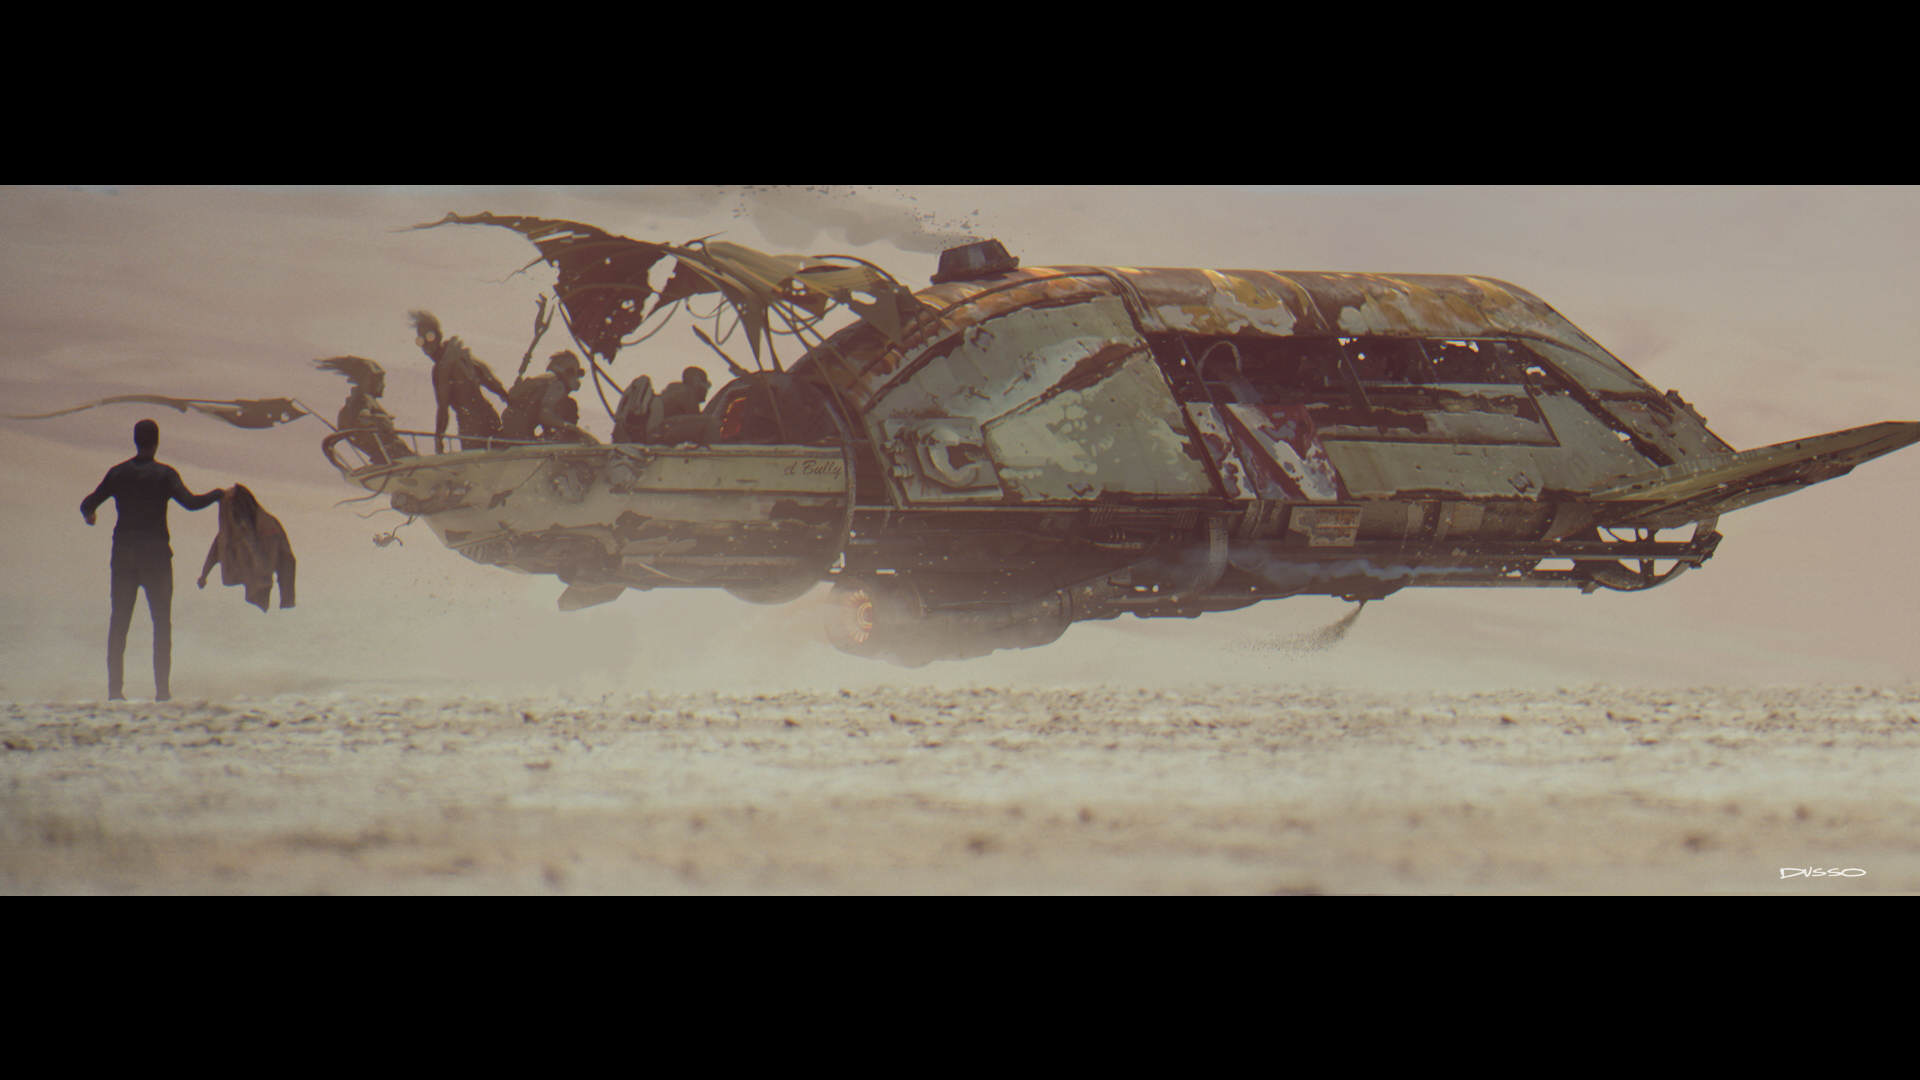 ARTDEPT VD TFA 037 Star Wars Creators Reveal Awesome Force Awakens Concept Art